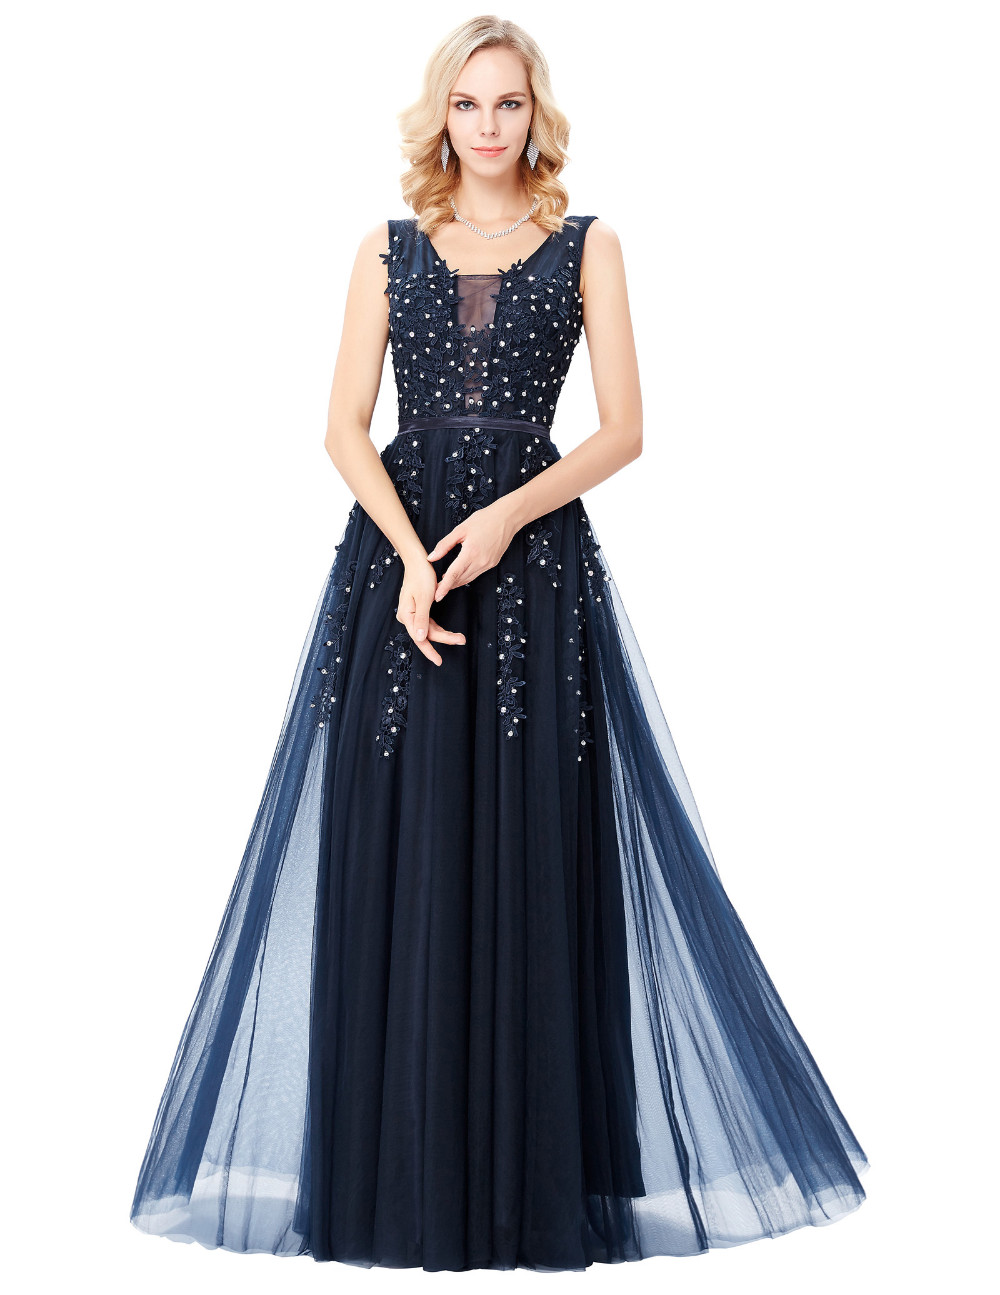 Grace Karin Tulle Appliques Celebrity Prom Dress Sexy V Back Sleeveless Long Royal Blue Robes De Soiree 2017 Longue Prom Dresses 10